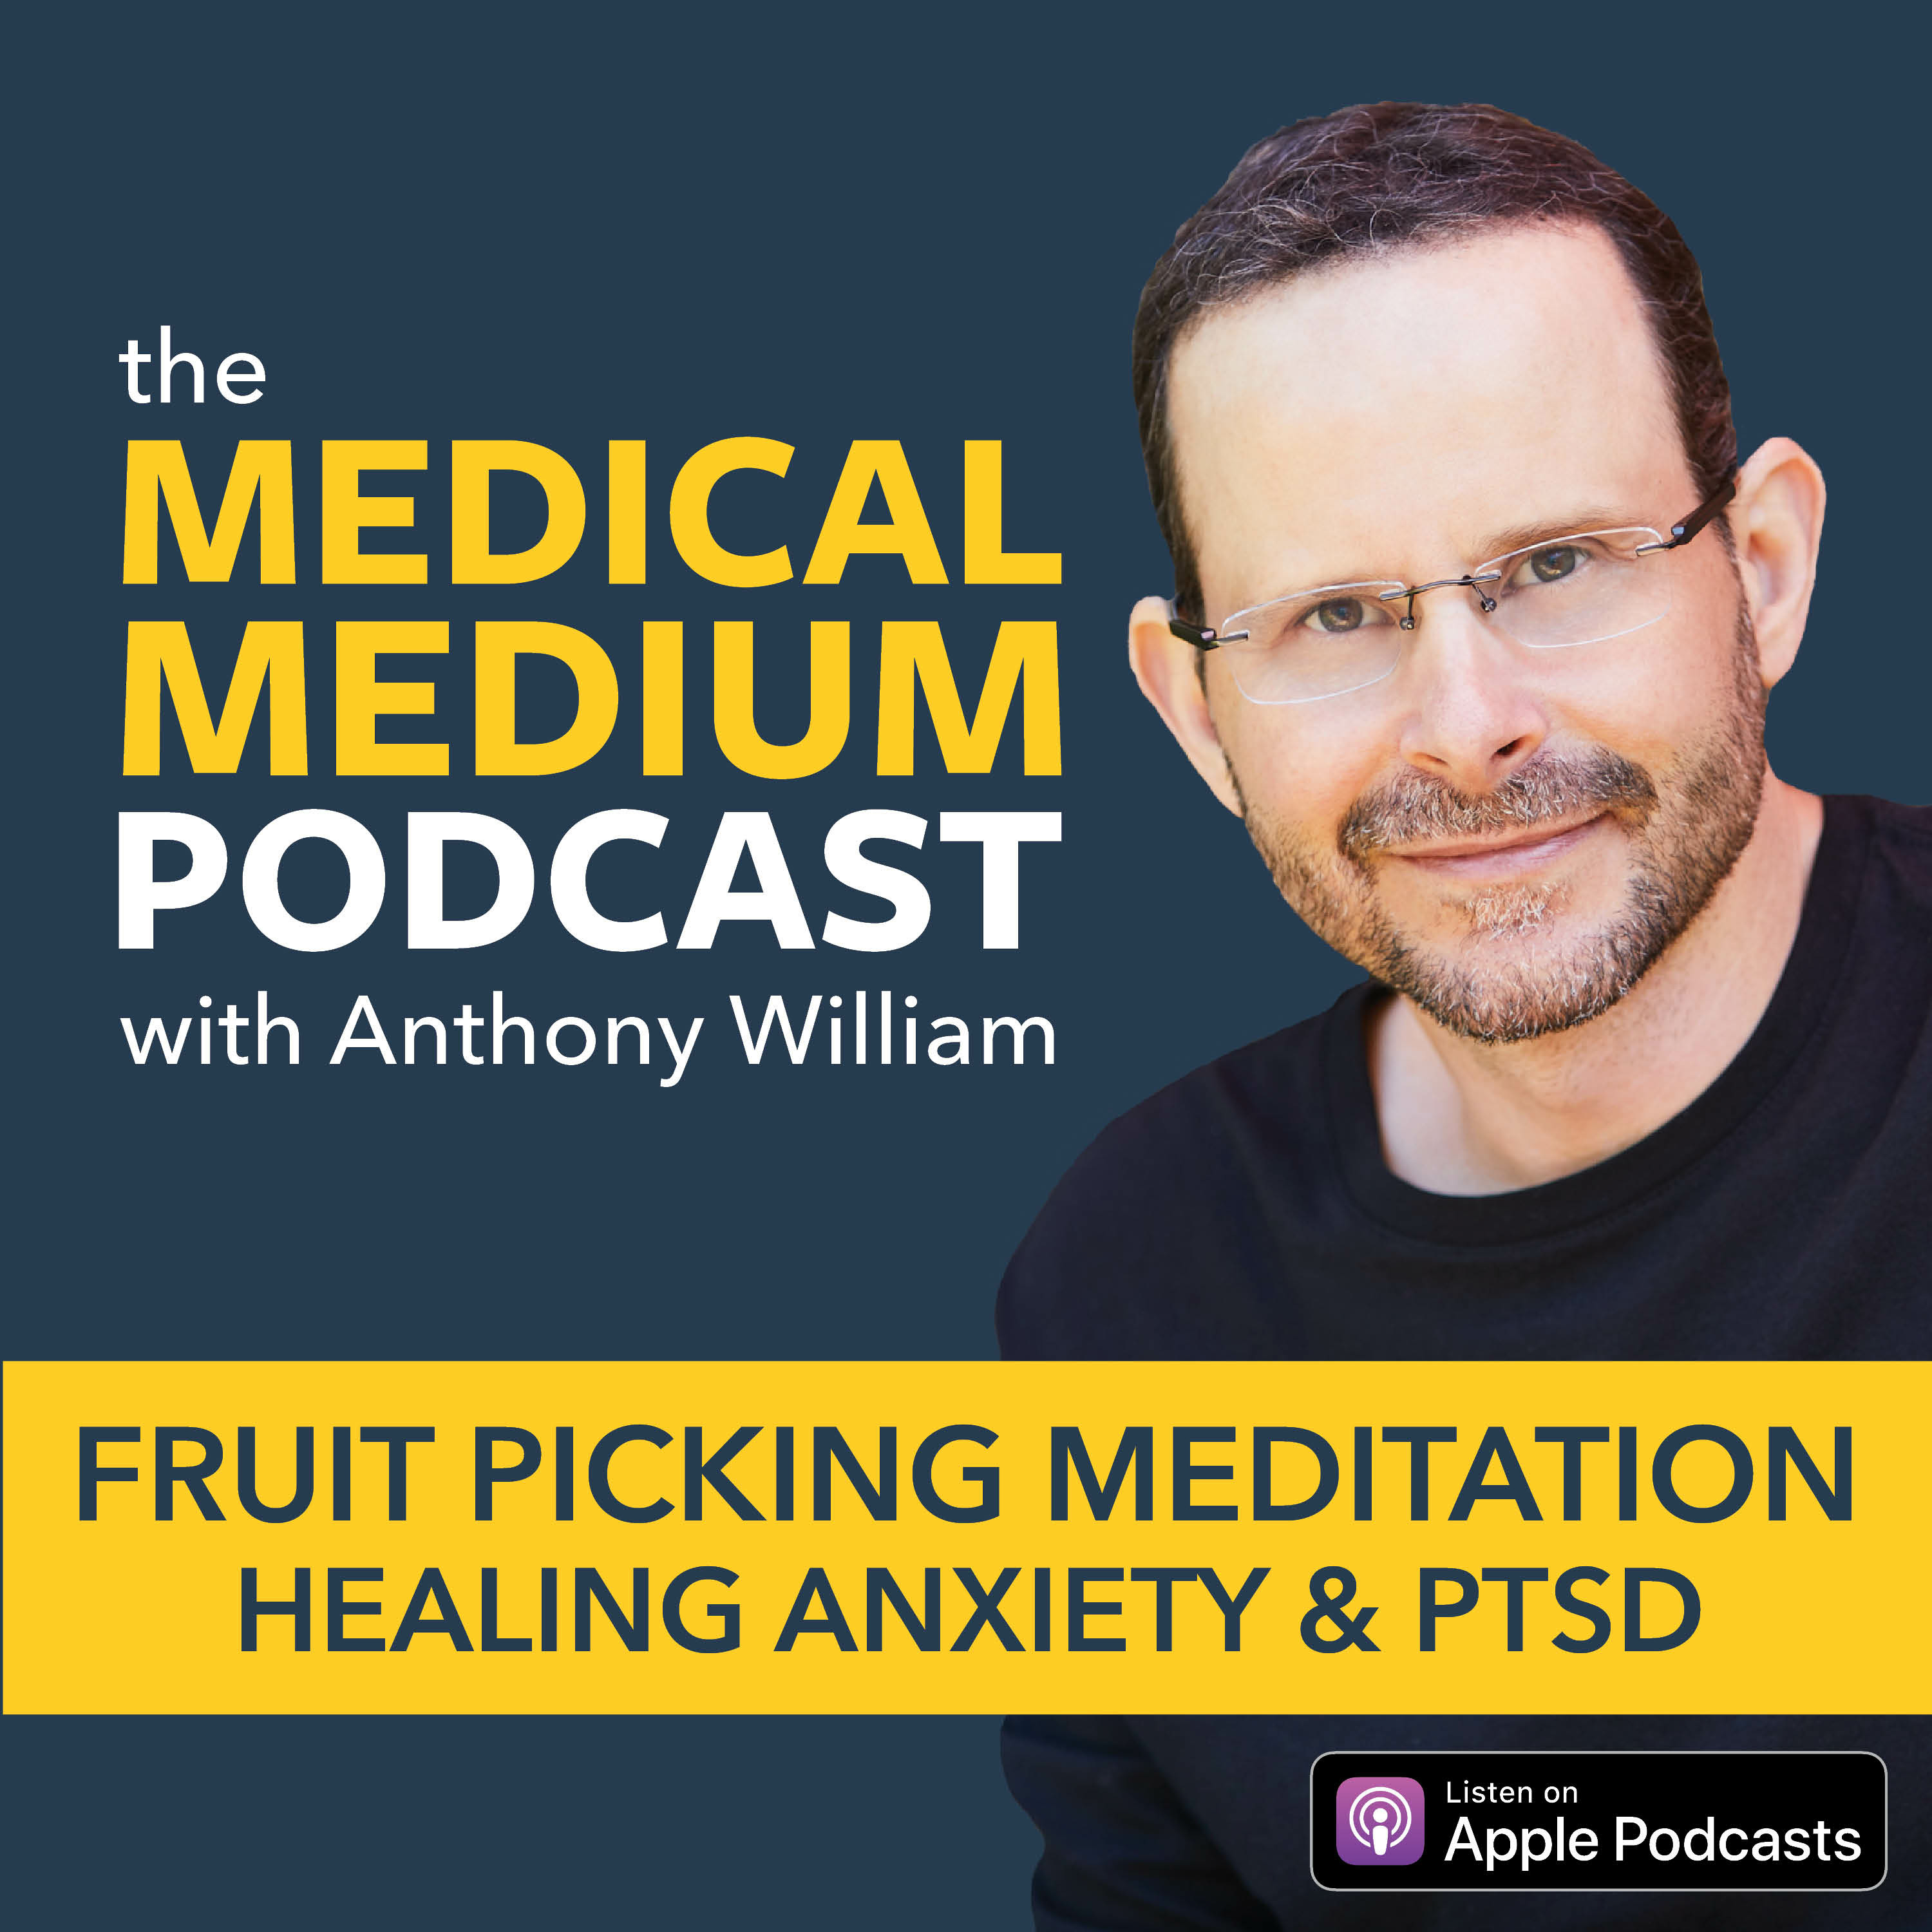 015 Fruit Picking Meditation: Healing Anxiety and PTSD